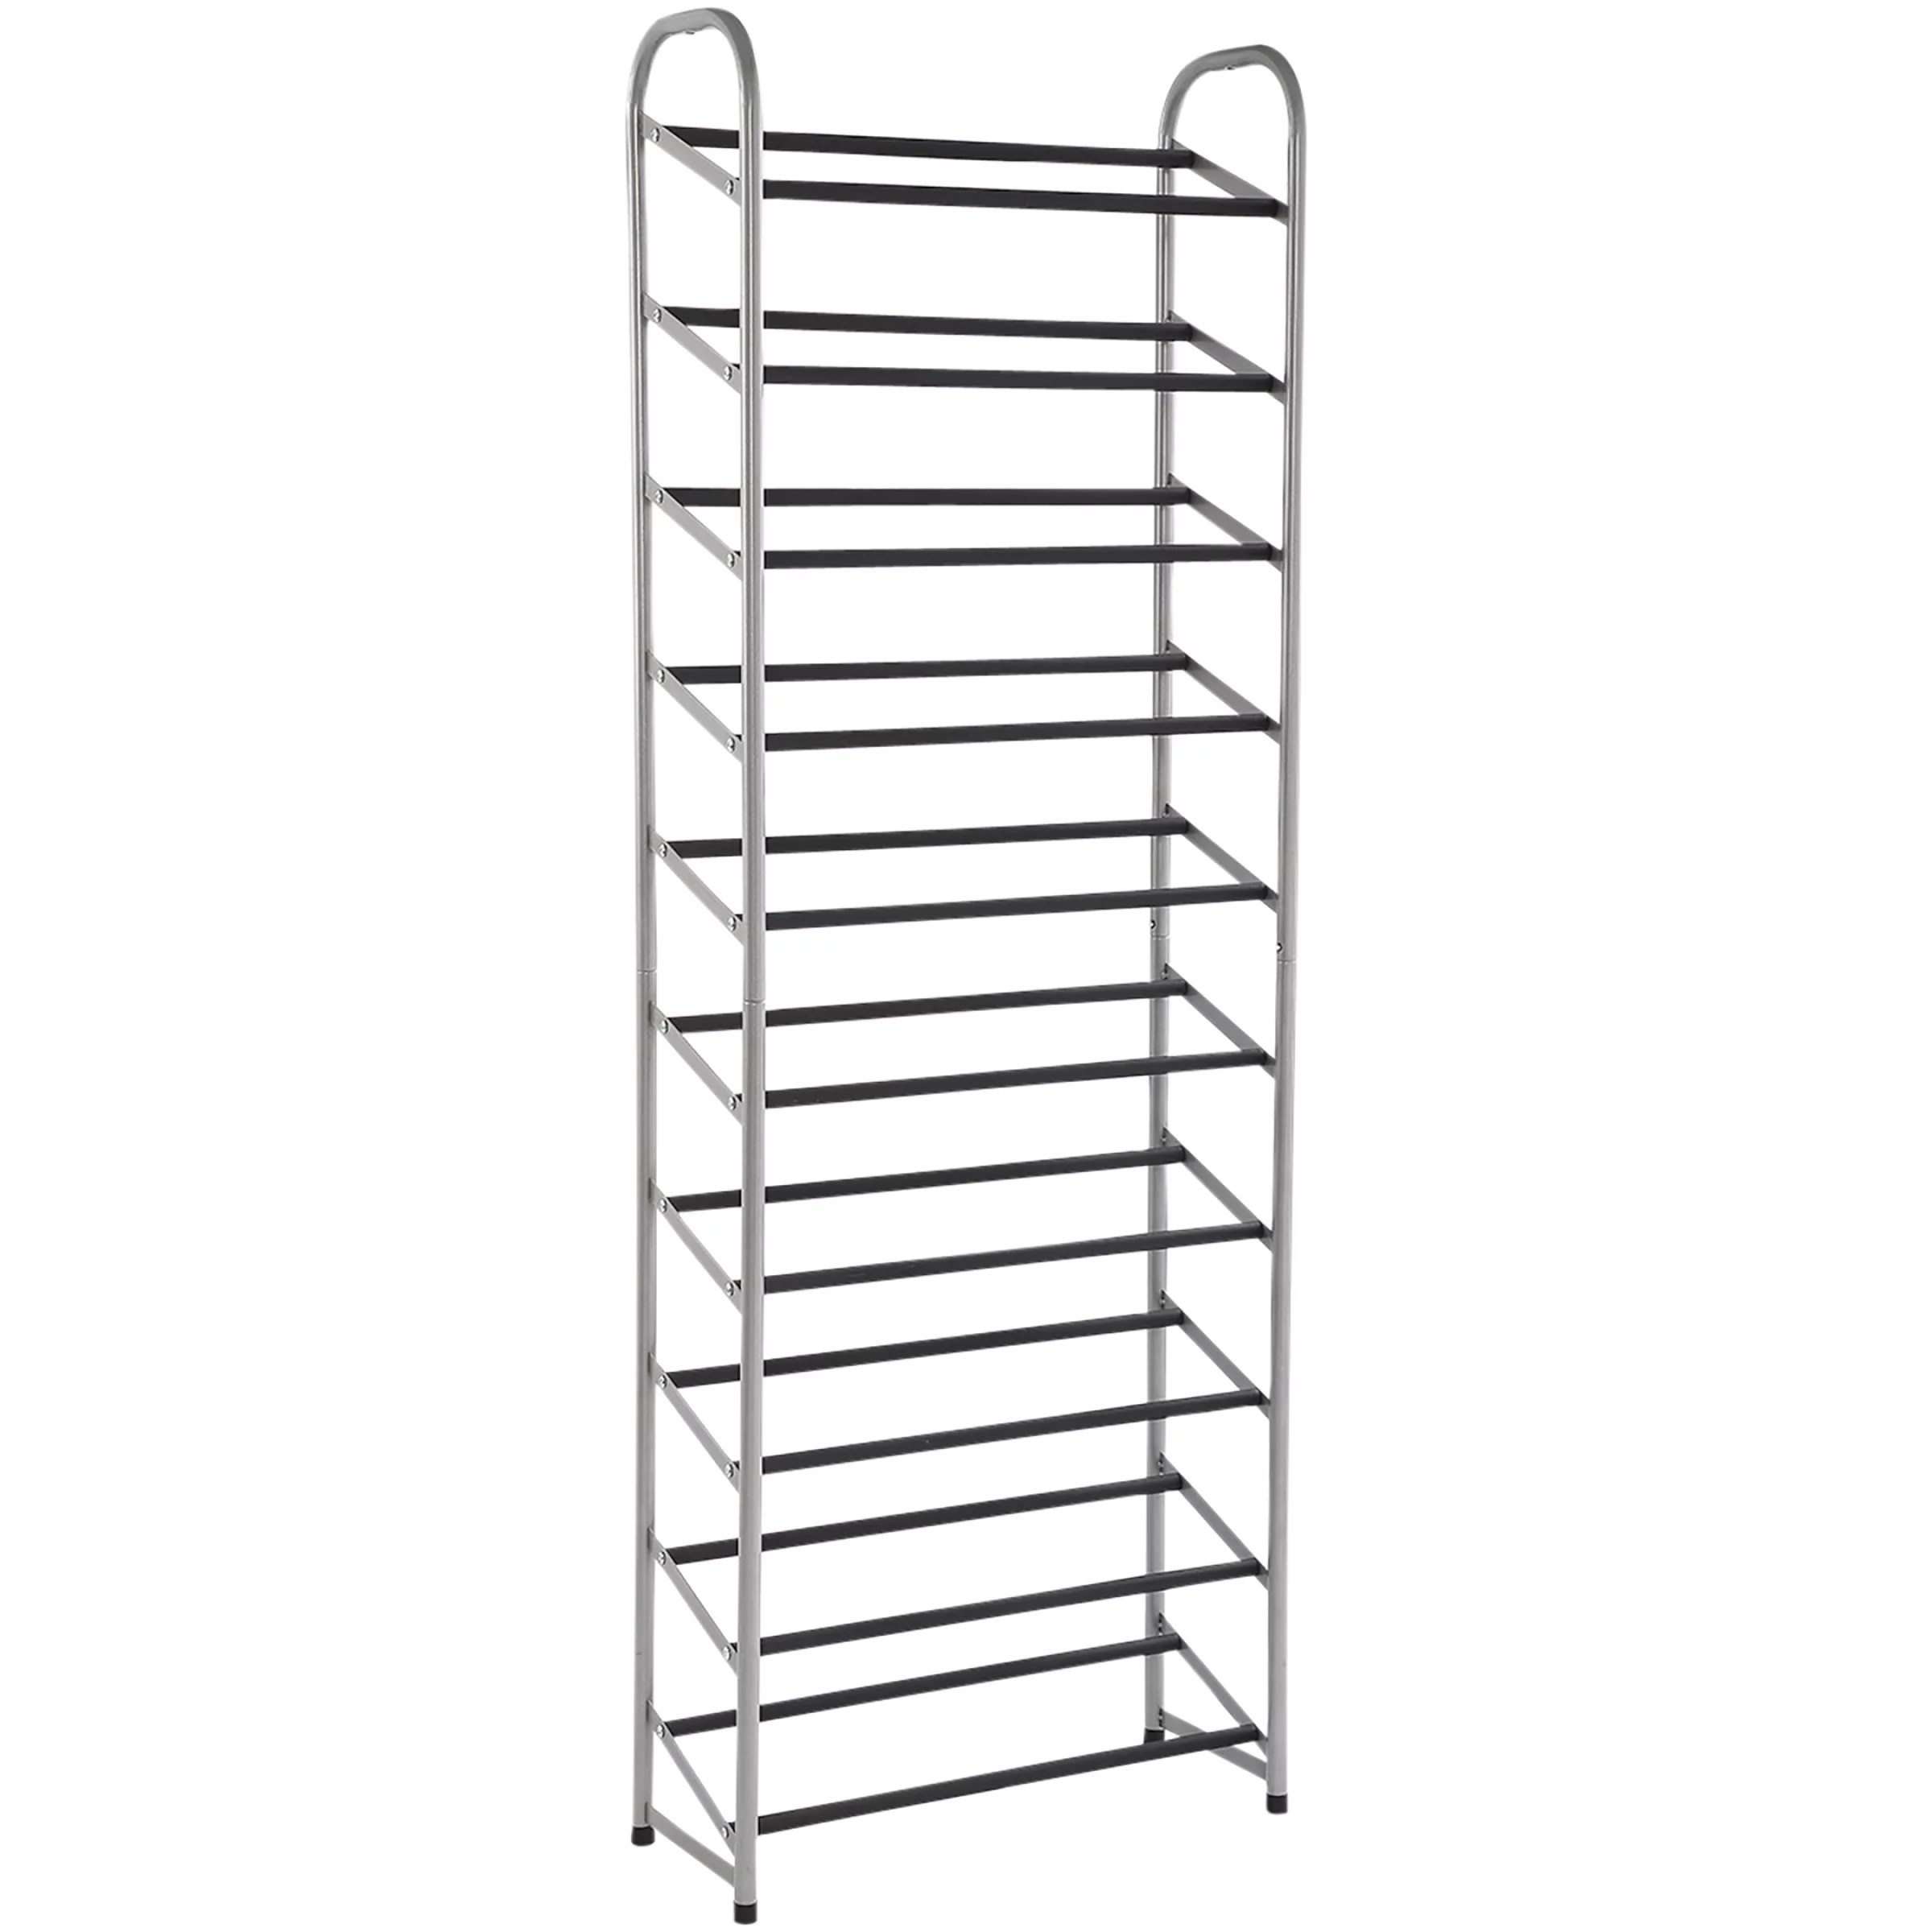 10 Tier Narrow Shoe Rack Shelves Closet Storage Organizer